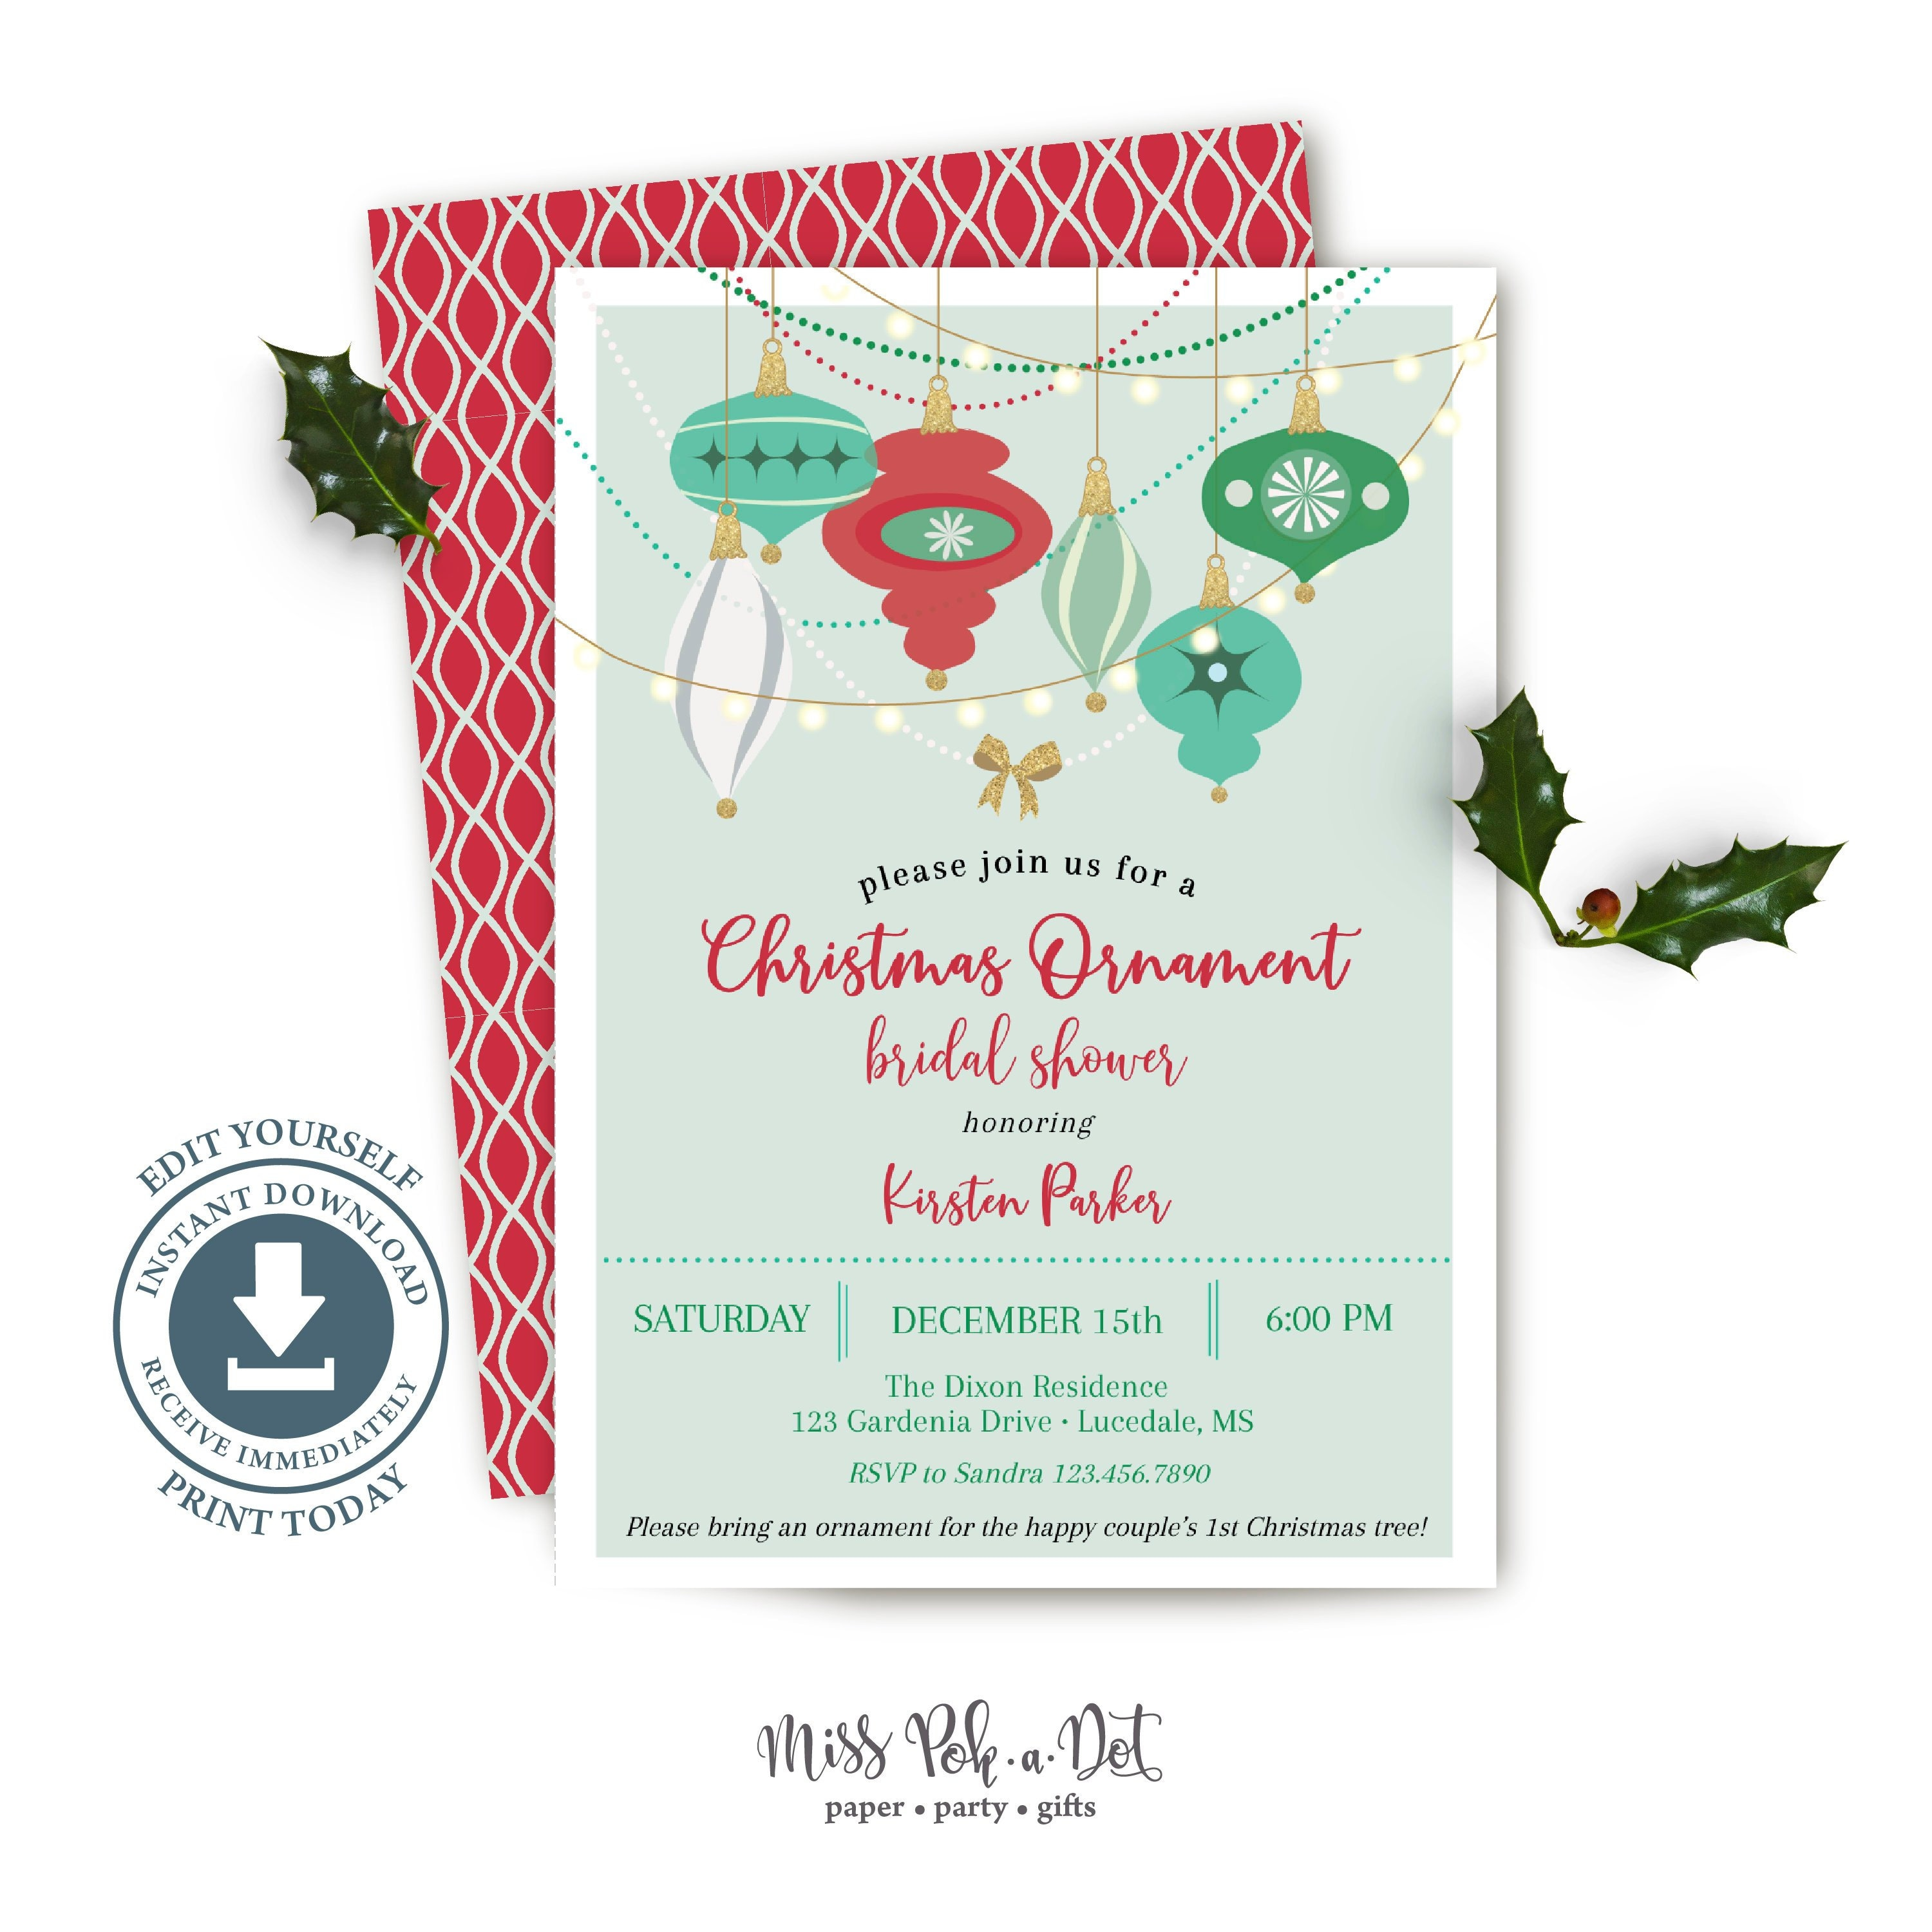 Ornament Bridal Shower Invitation Printable Christmas Party | Etsy